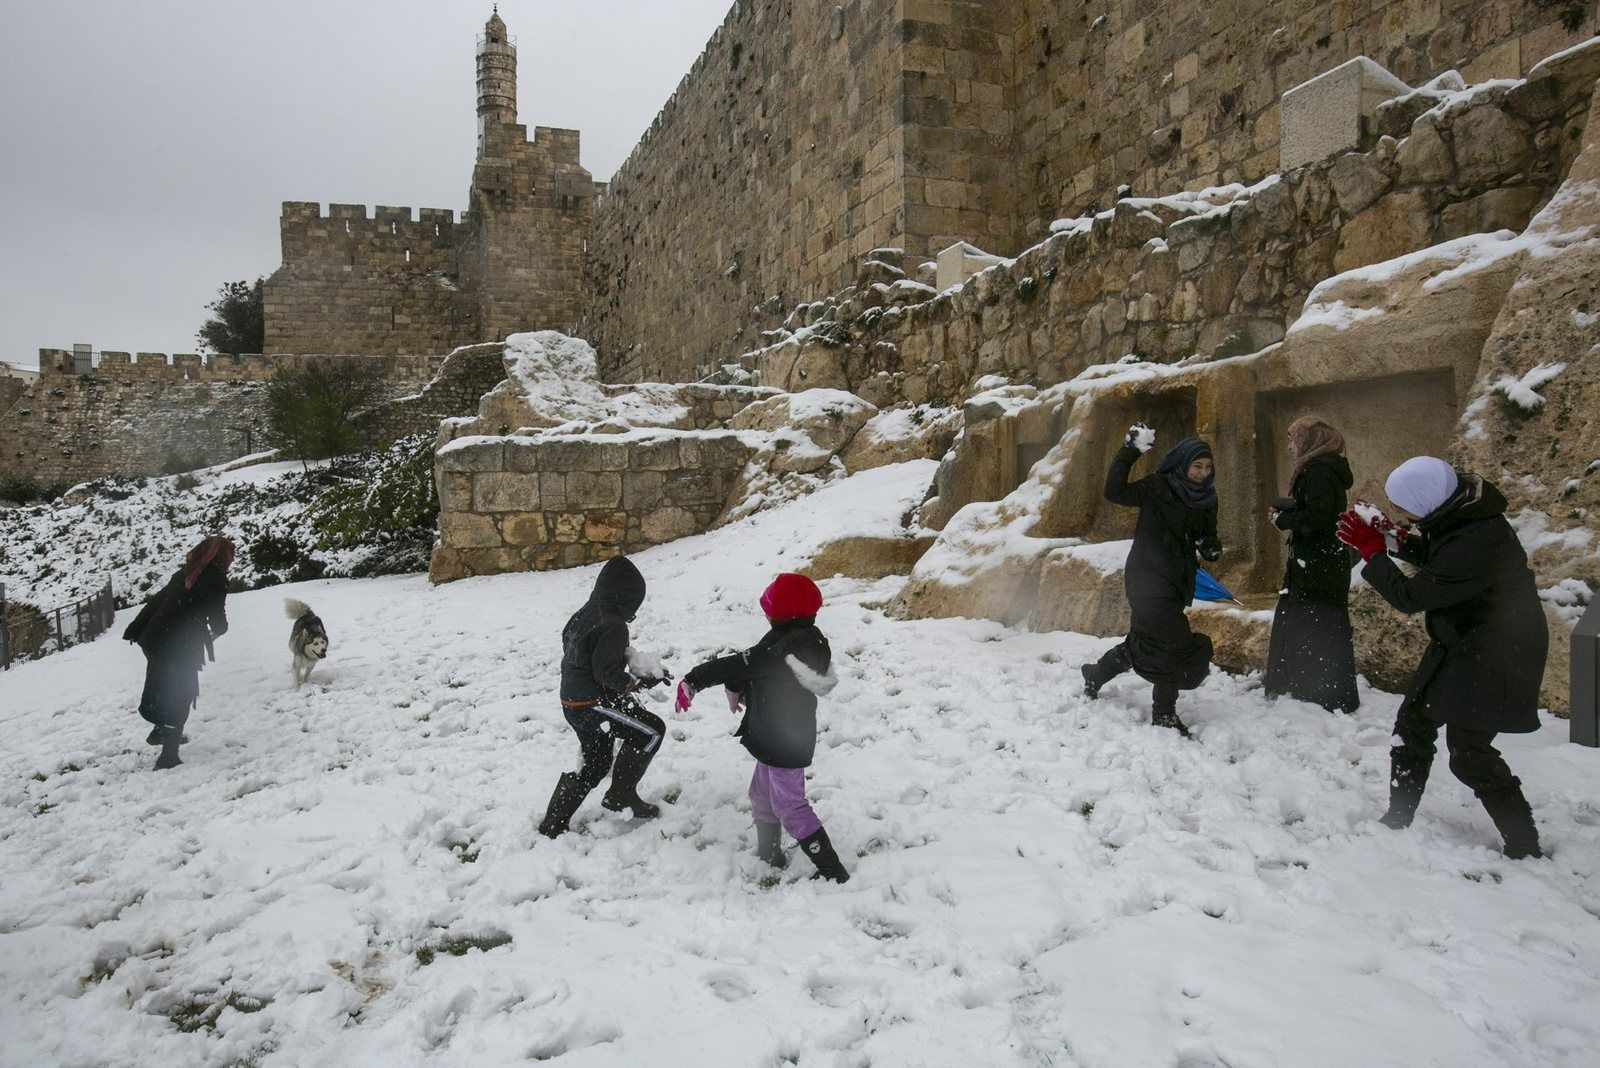 Snow in Jerusalem. Dec. 12, 2013. Photo by Olivier Fitoussi http://www.haaretz.com/